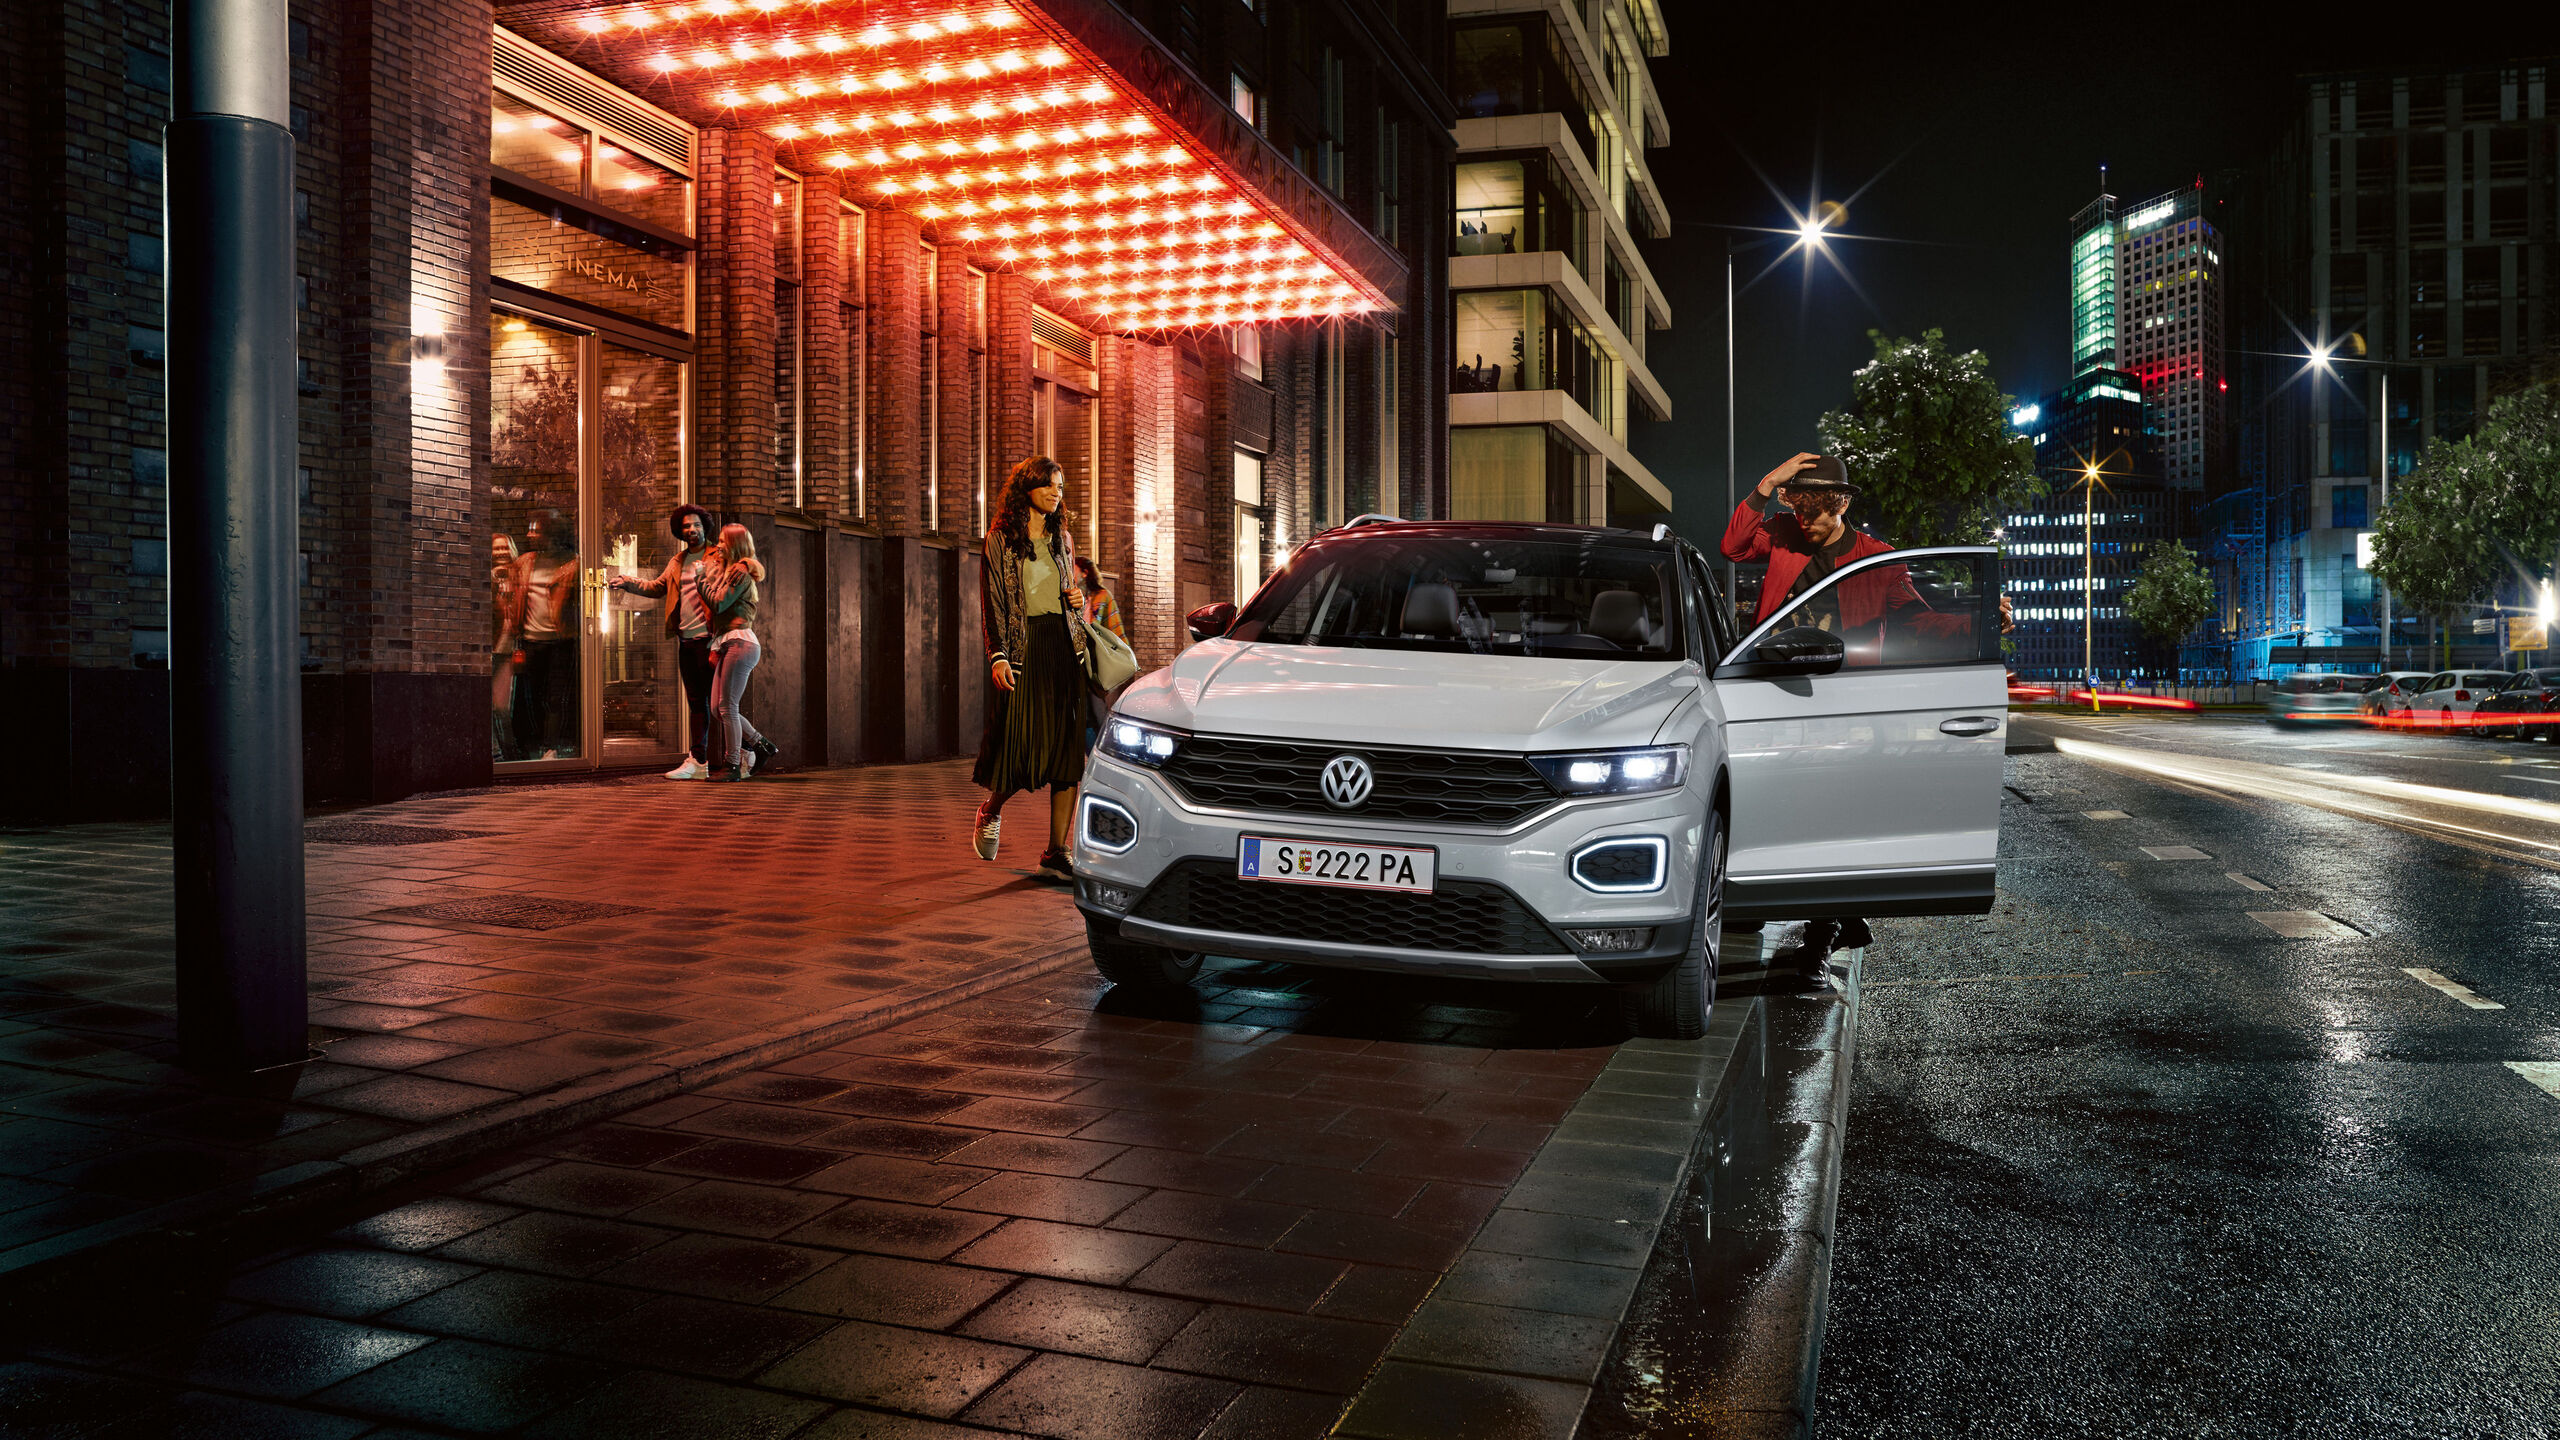 vw volkswagen t-roc white